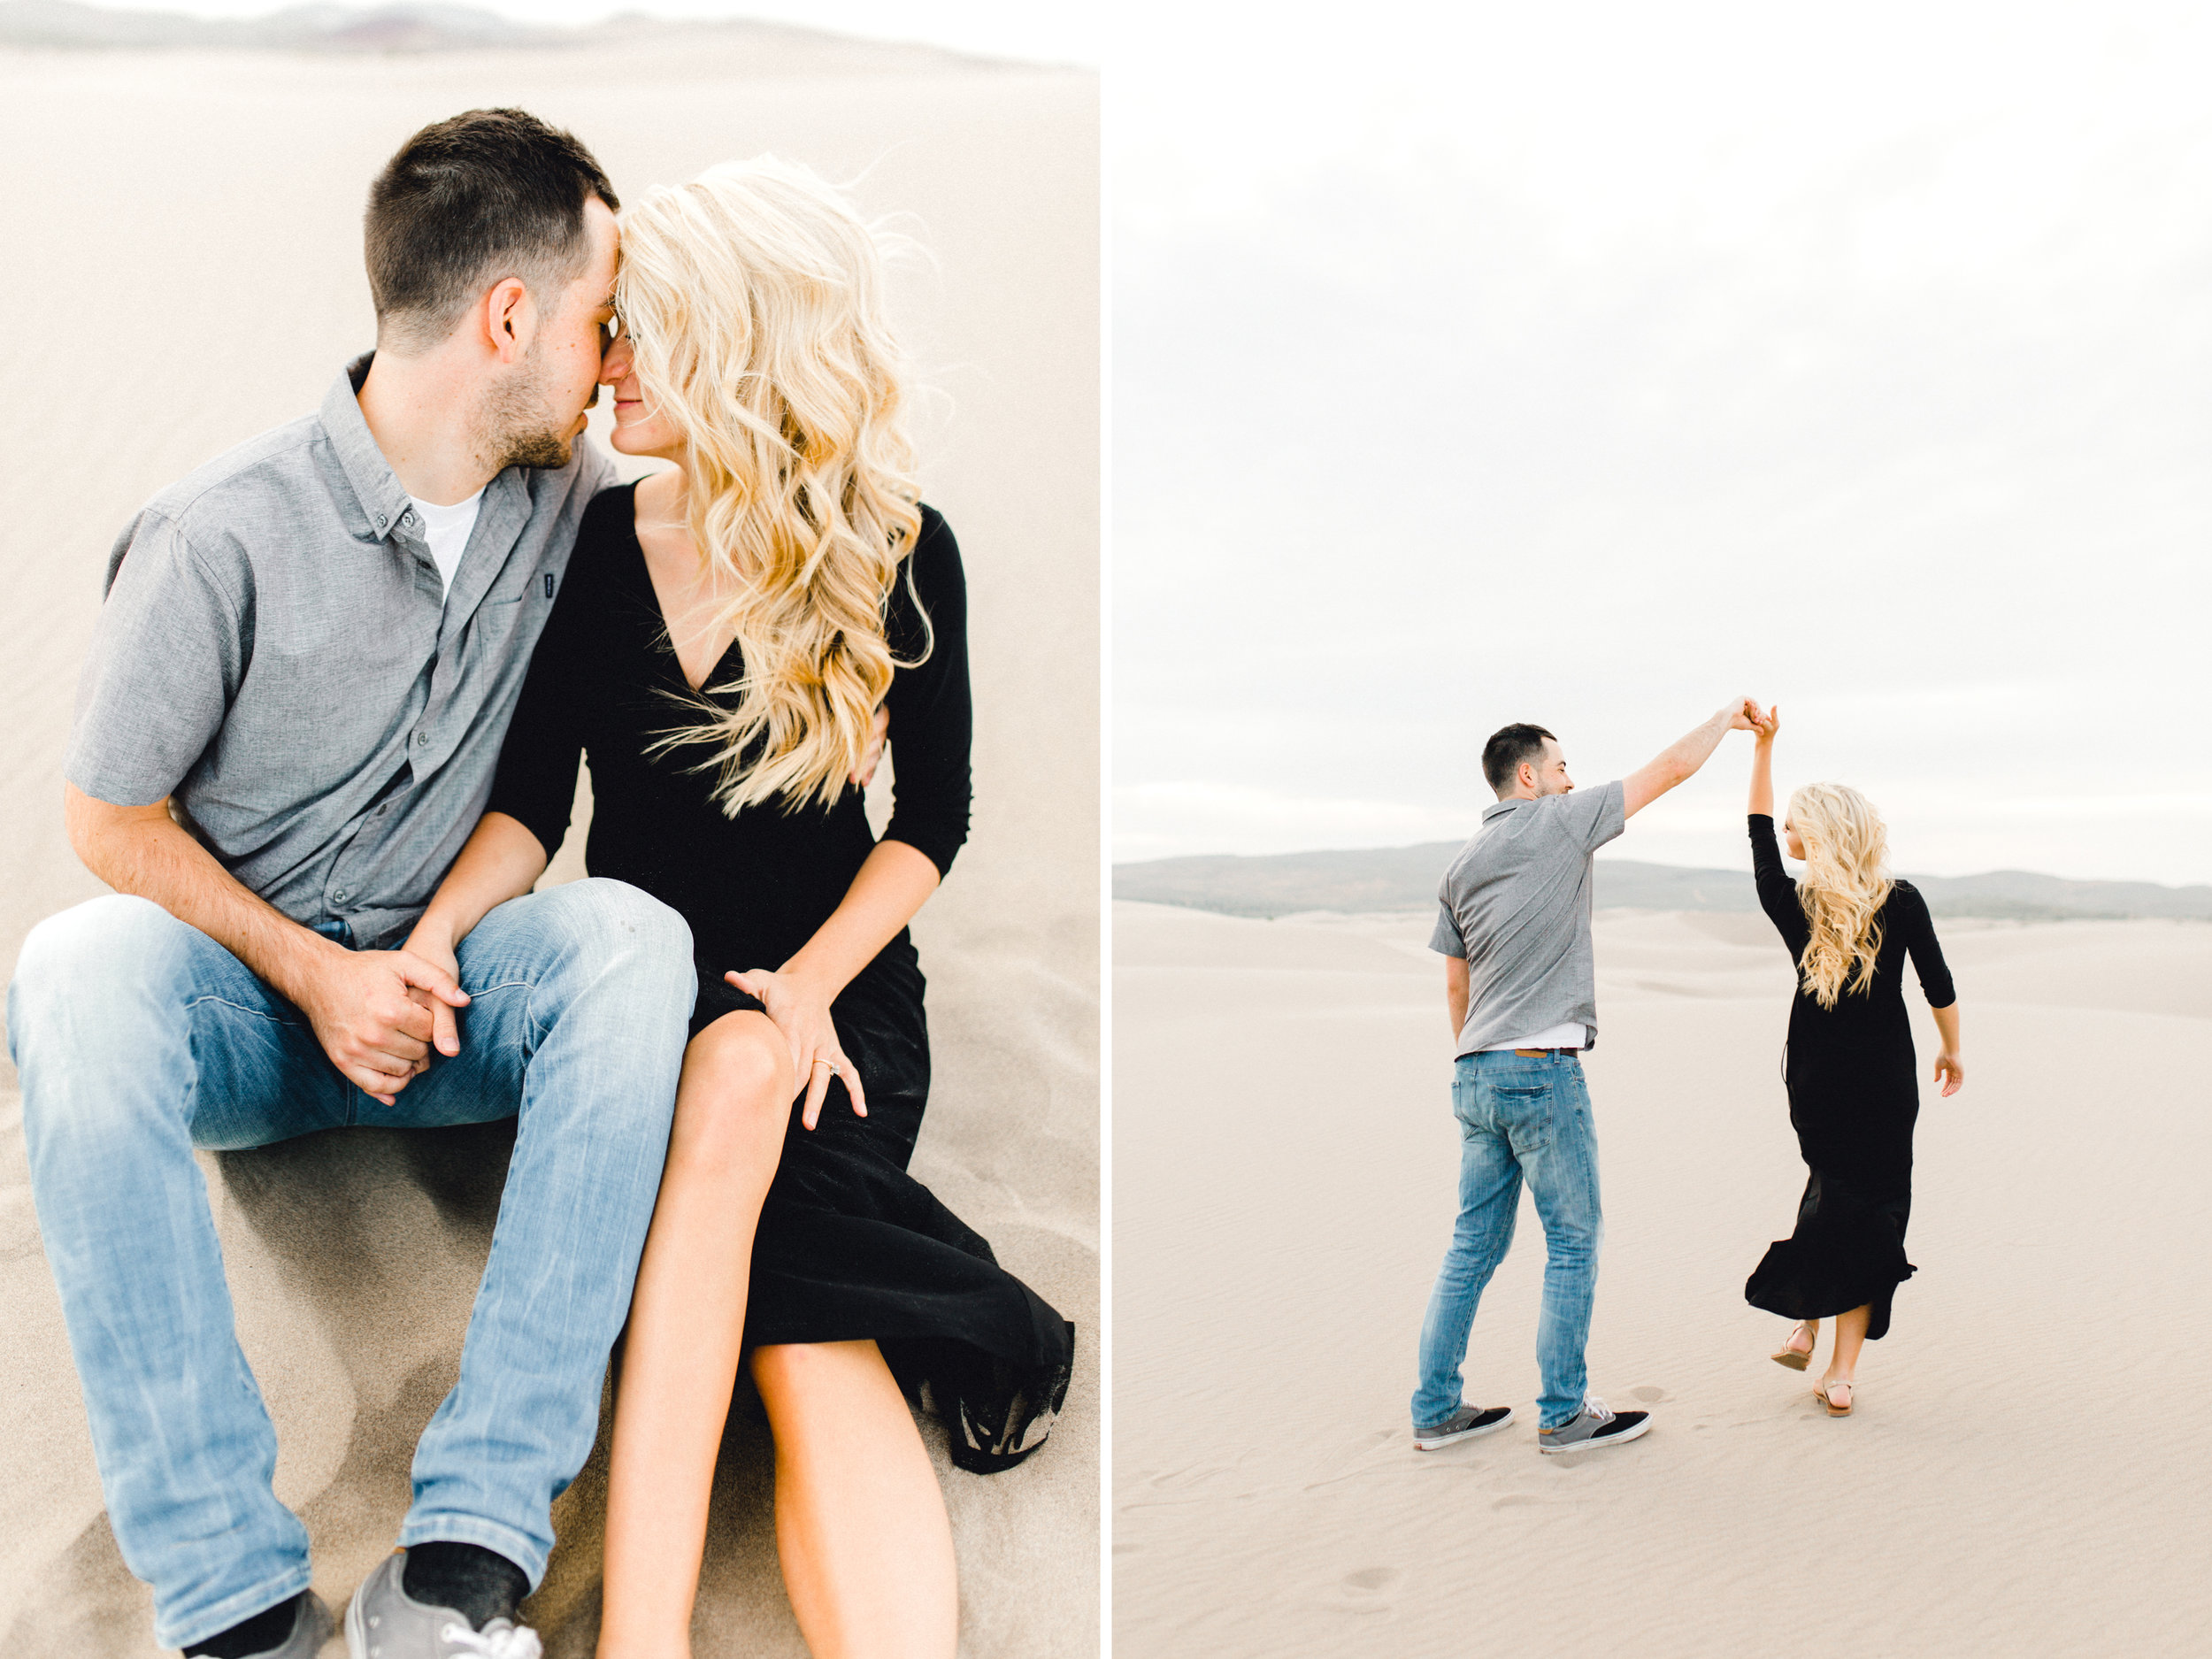 rexburg-idaho-sand-dunes-engagement-photographer-august-trevor3.jpg